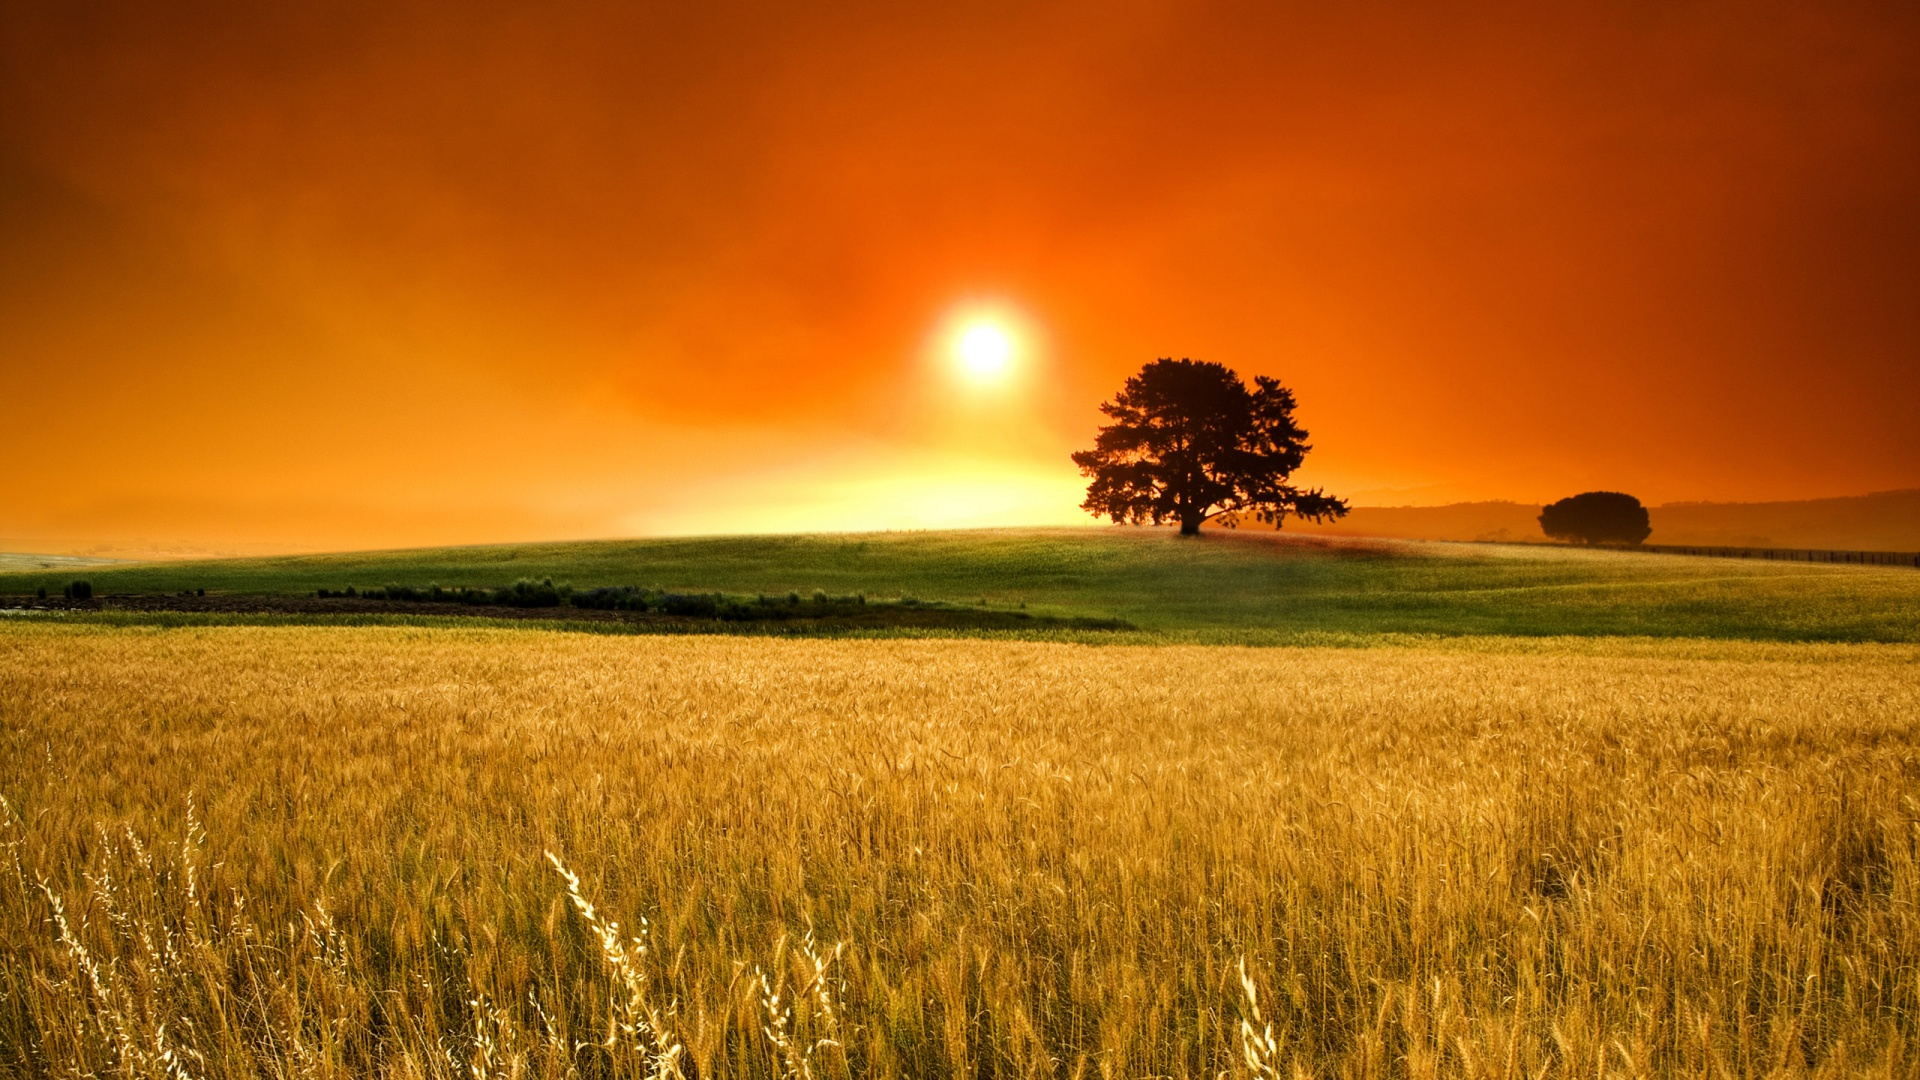 wheat-field-hd-wallpaper-509542